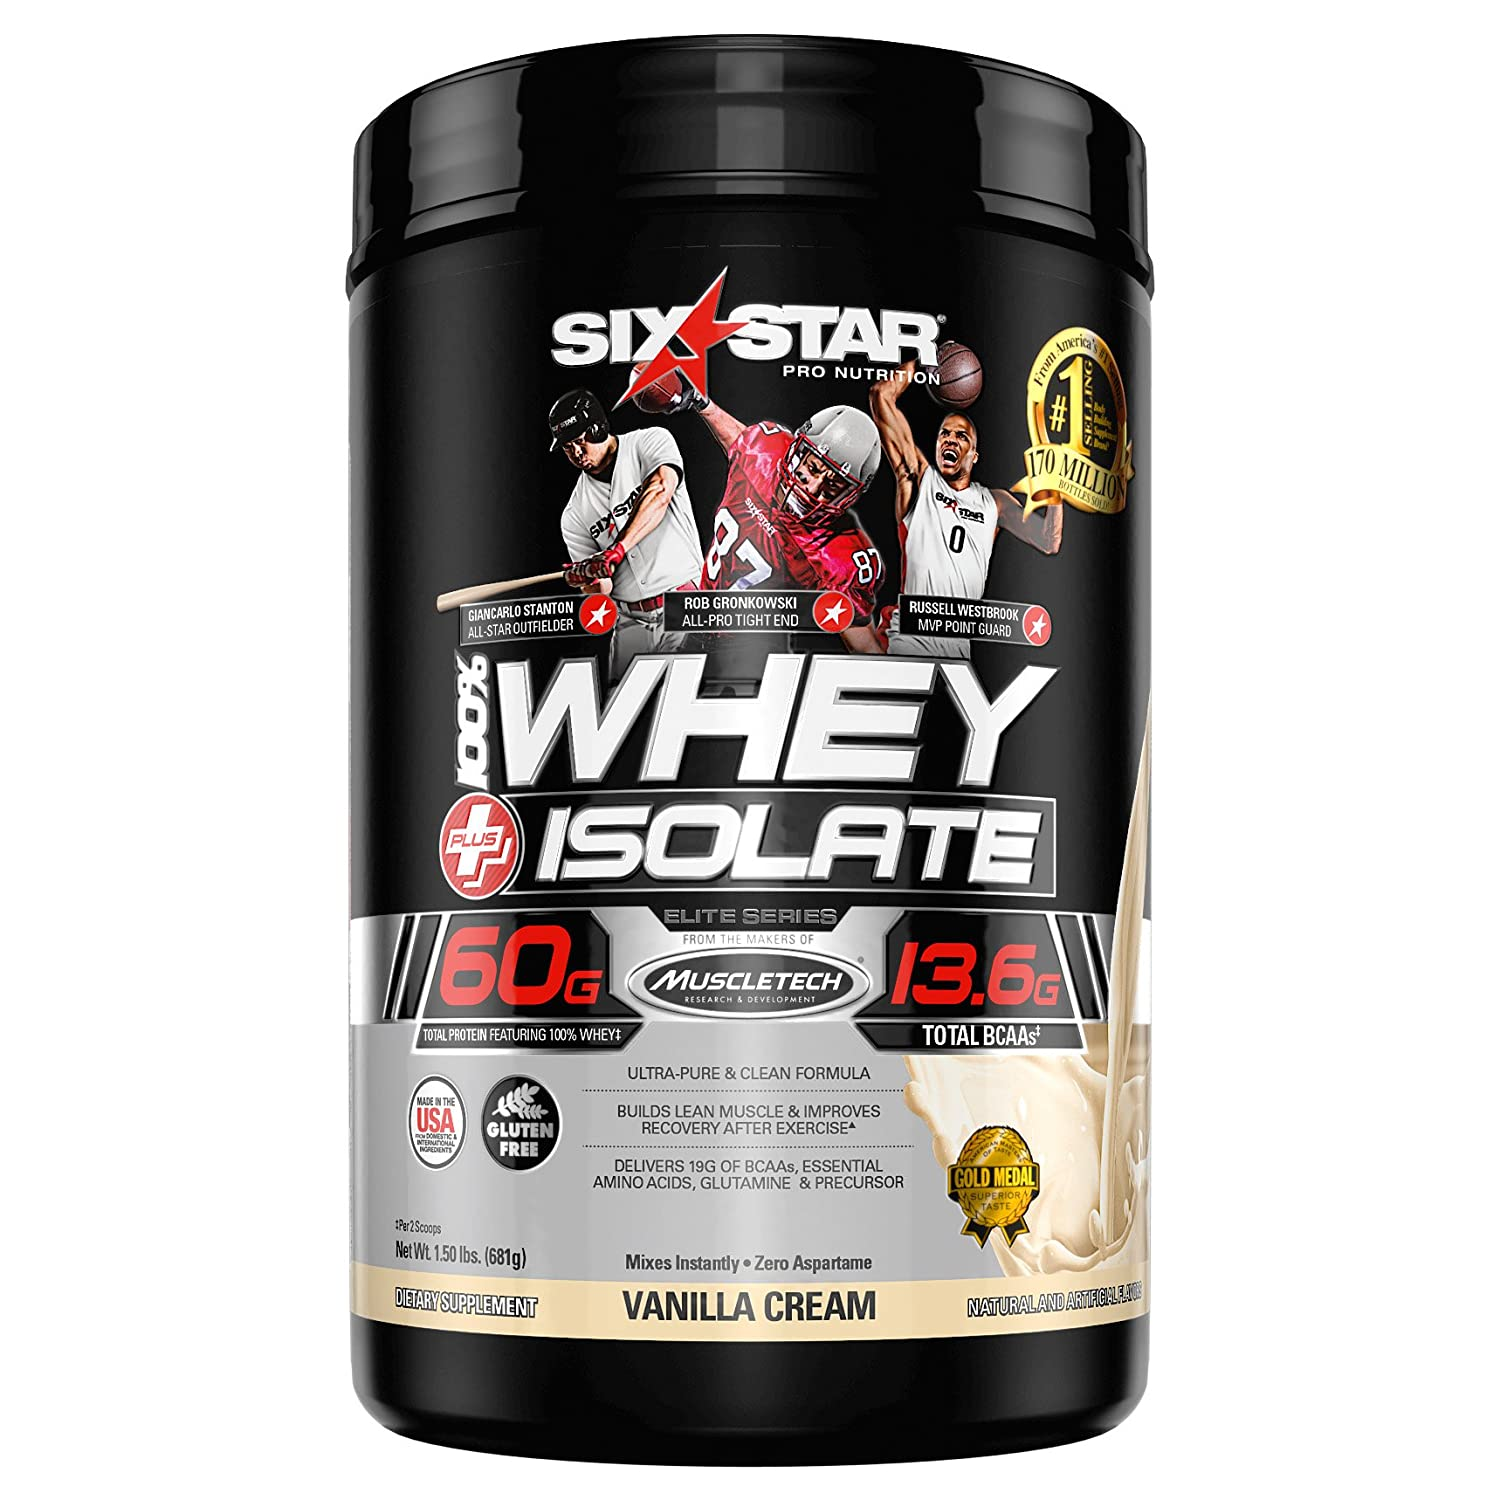 Six Star Pro Nutrition Professional Strength Whey Isolate Elite Series French Vanilla Cream 1.5 lbs by Six Star Pro Nutrition: Amazon.es: Salud y cuidado ...